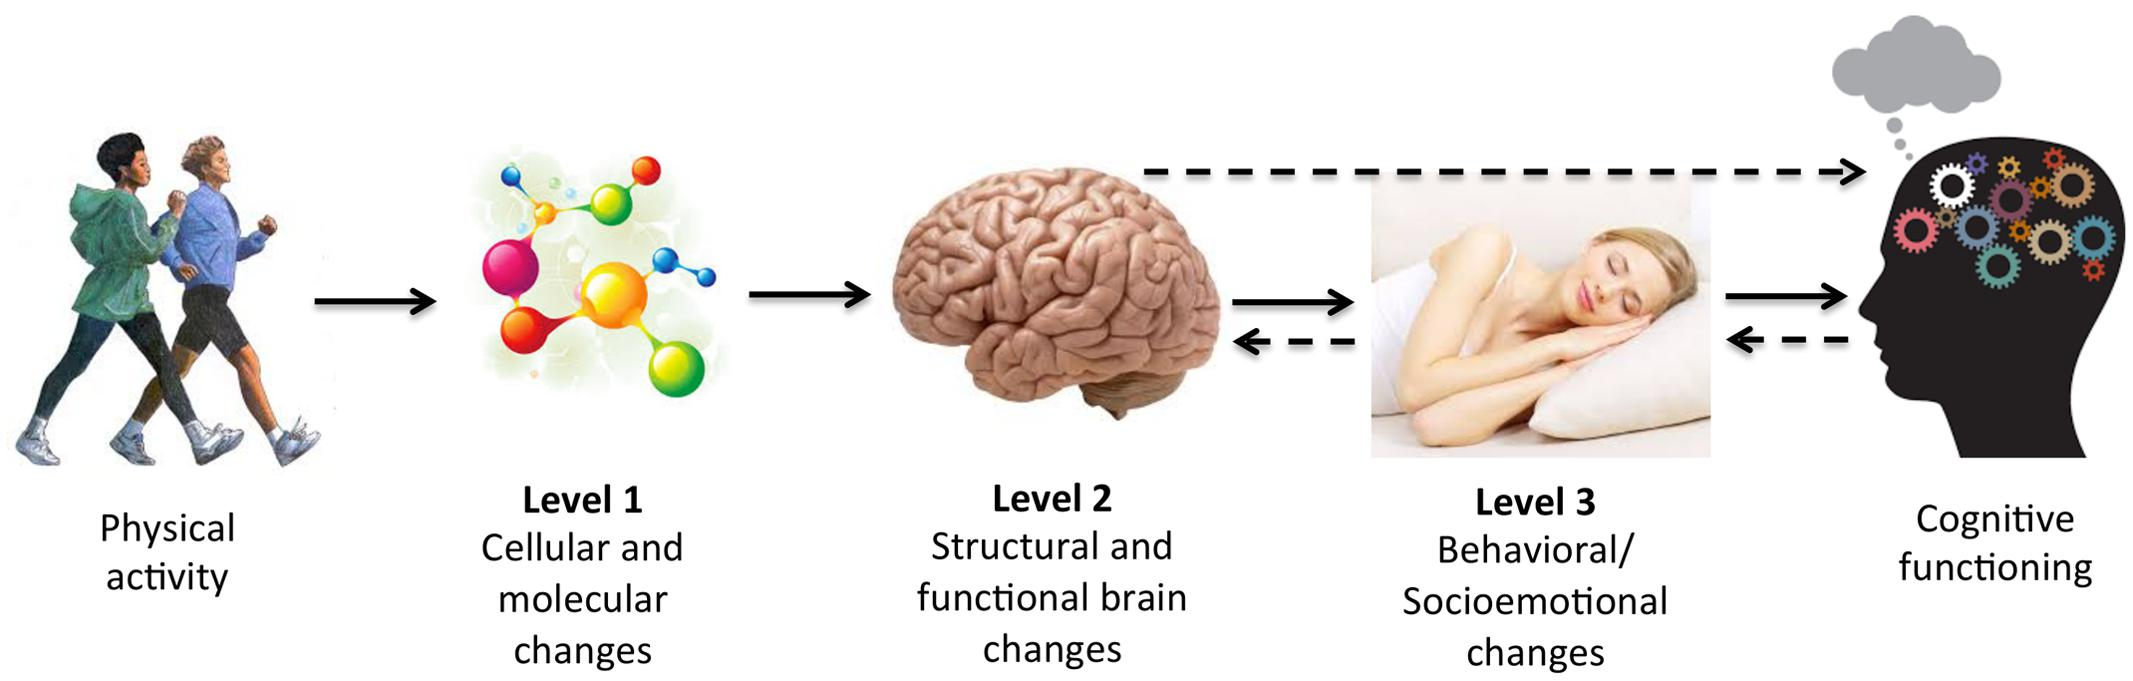 Frontiers | Mediators of Physical Activity on Neurocognitive ...